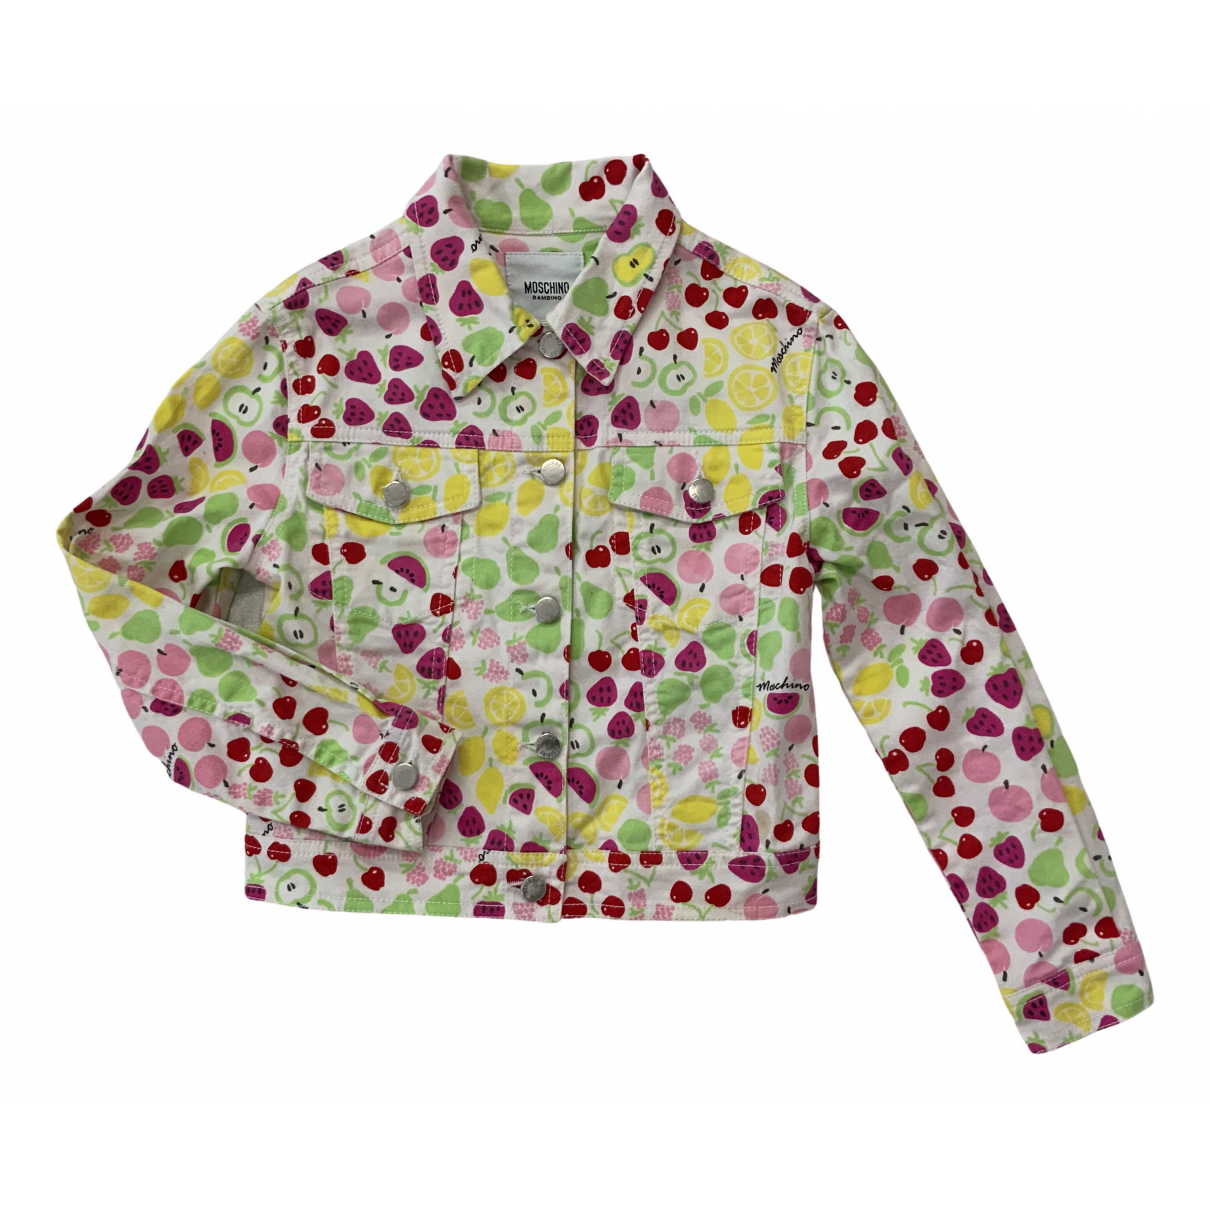 Moschino \N Multicolour Denim - Jeans jacket & coat for Kids 6 years - up to 114cm FR